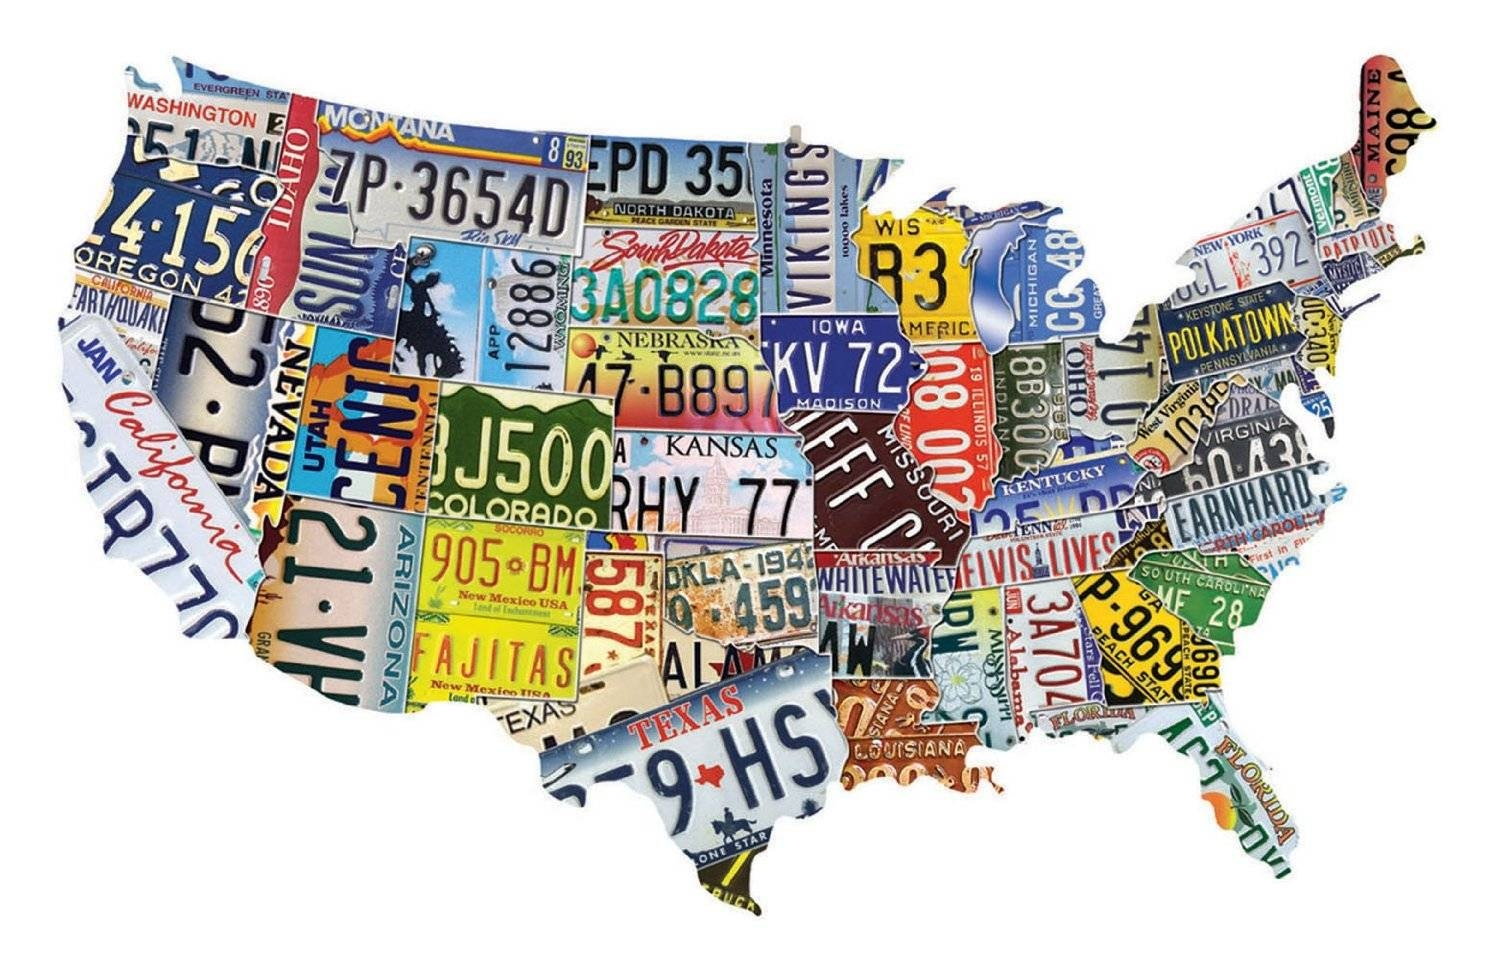 License Plate Map Usa 35 X 21 Inch Plasma Cut Metal Art Sign (View 11 of 20)